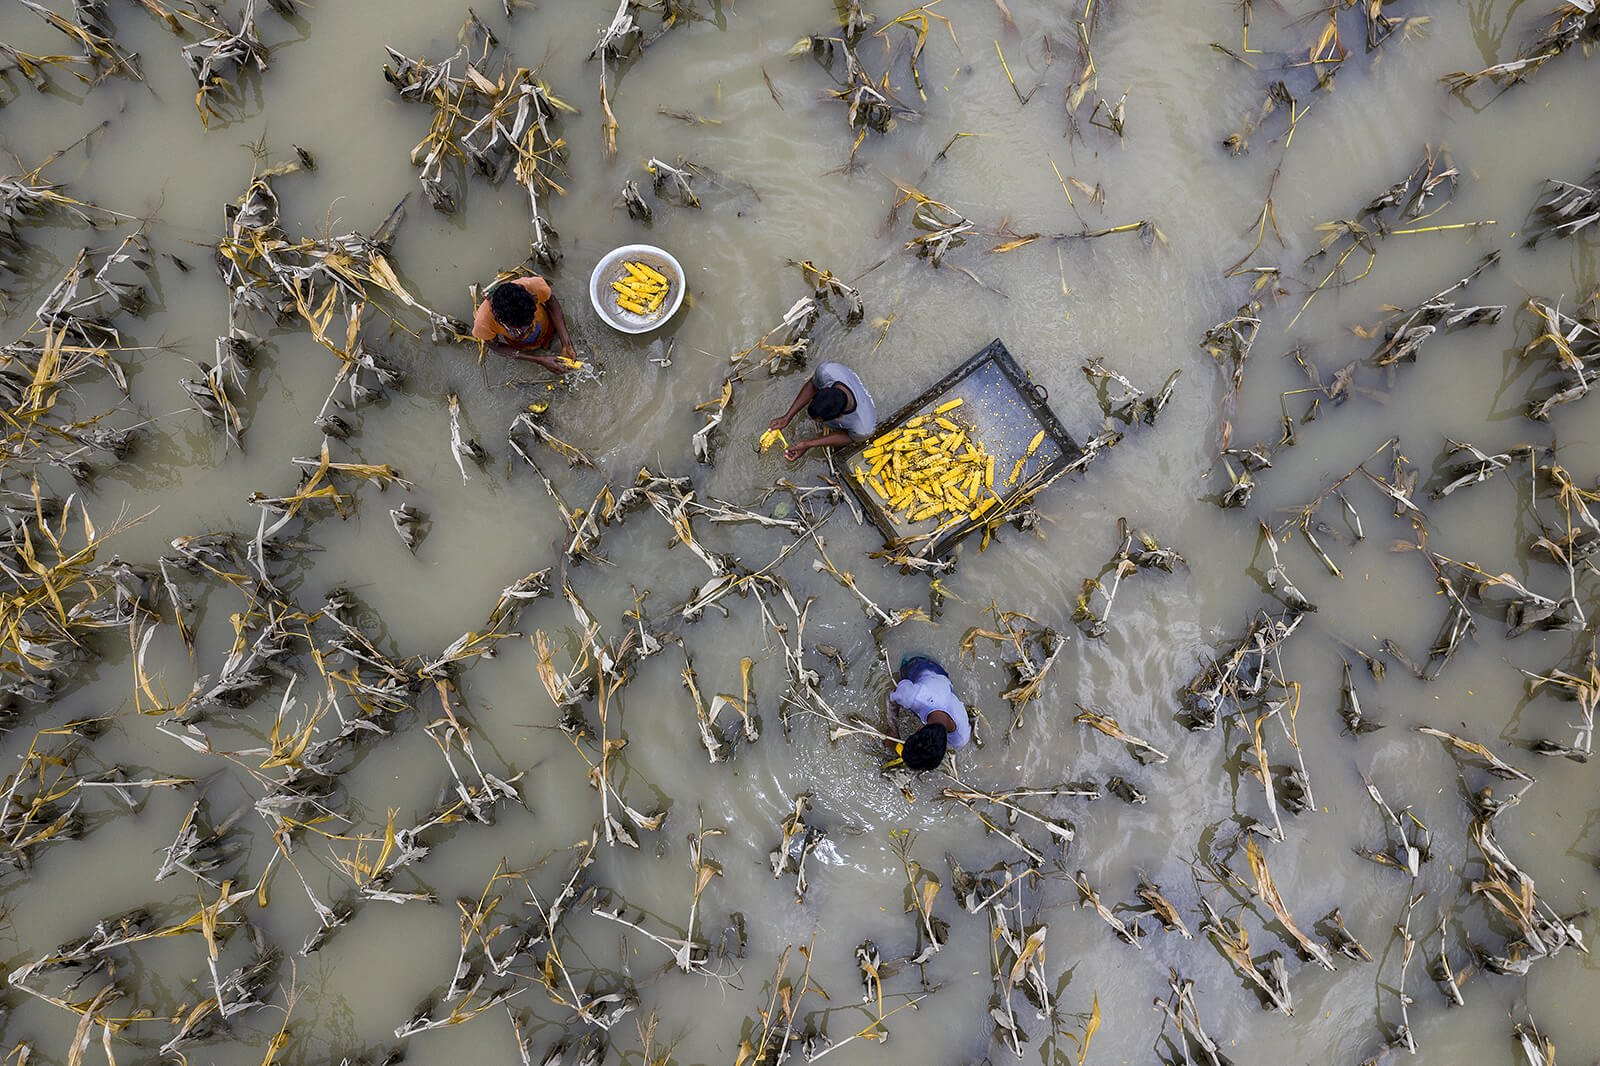 Flood Water has Damaged Crops